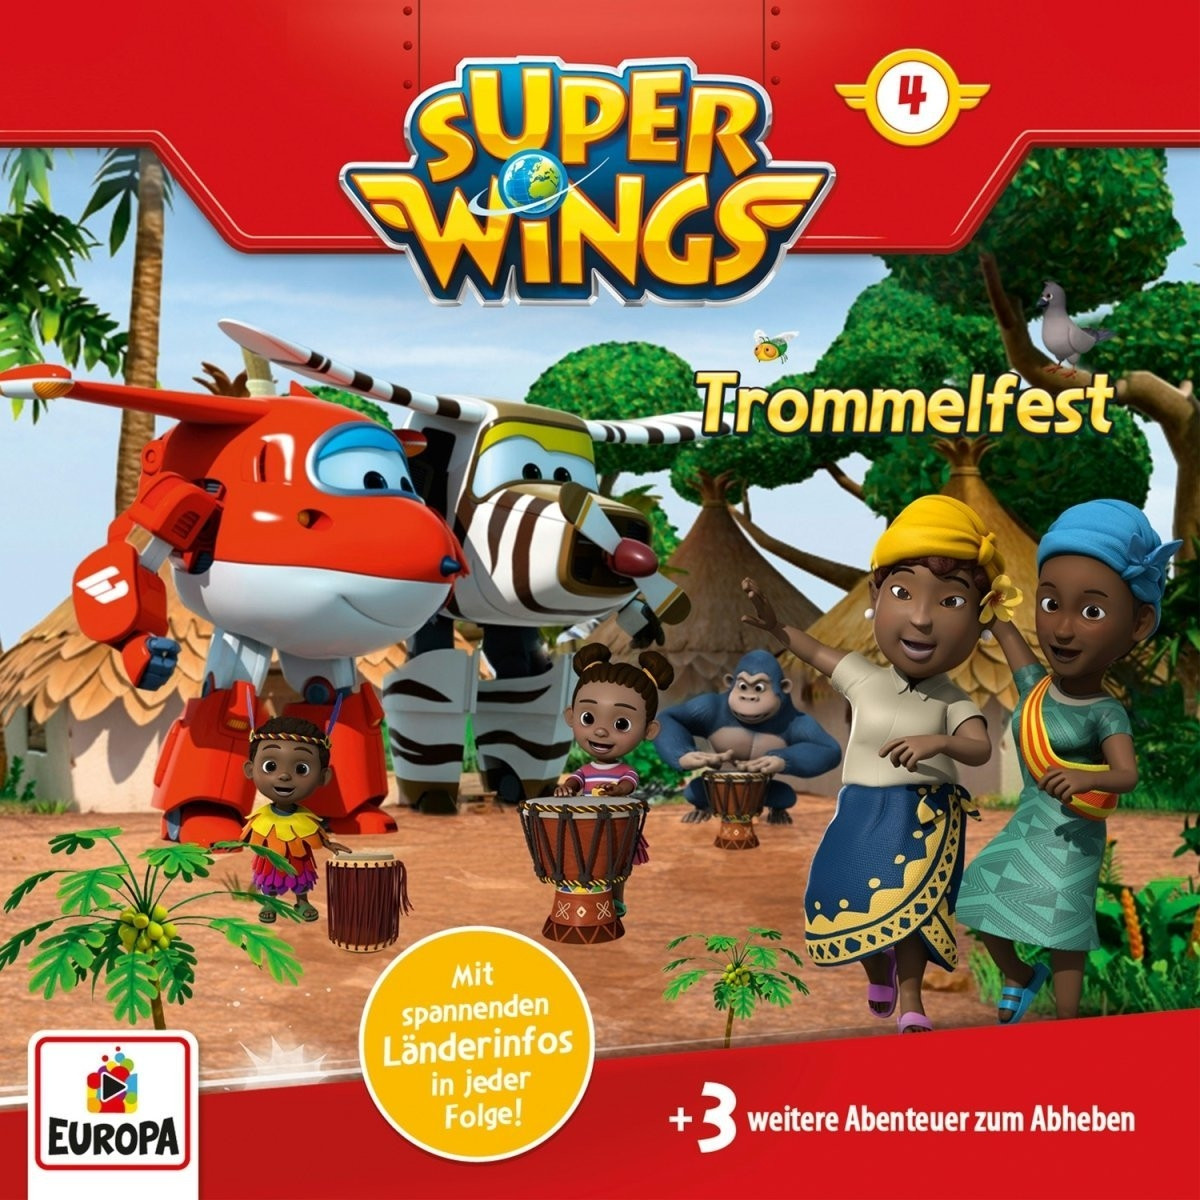 Super Wings - Folge 4: Trommelfest